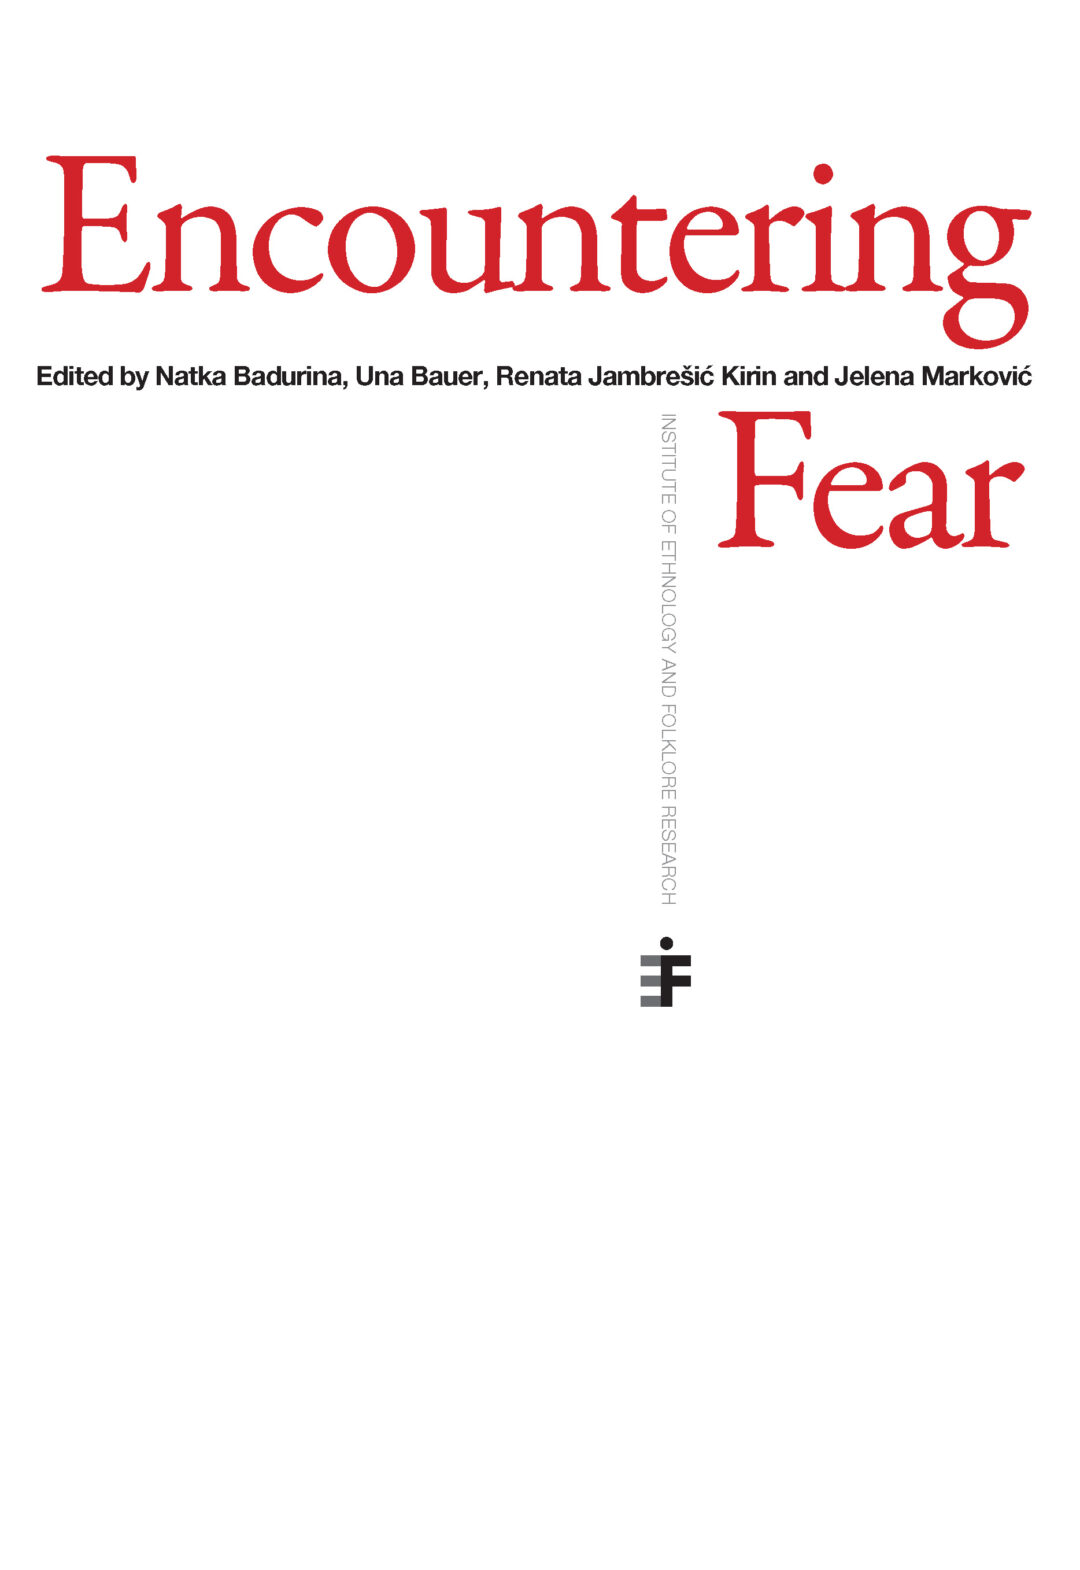 Encountering Fear